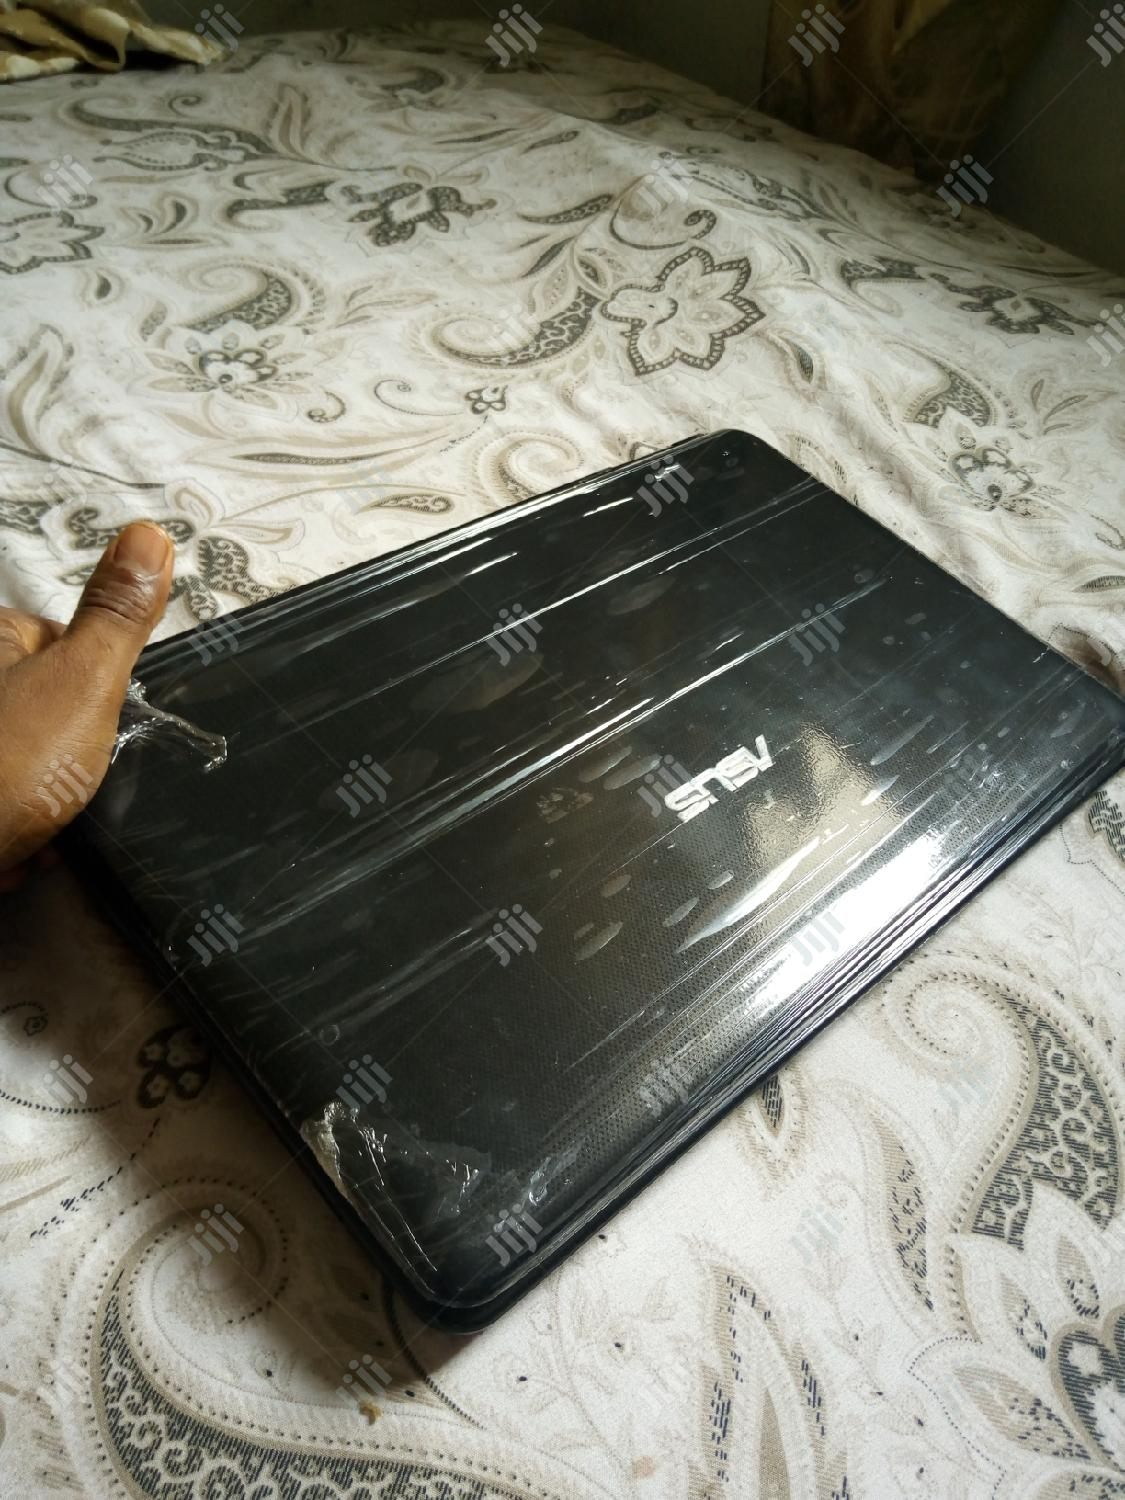 Laptop Asus 4GB AMD HDD 320GB | Laptops & Computers for sale in Lekki, Lagos State, Nigeria